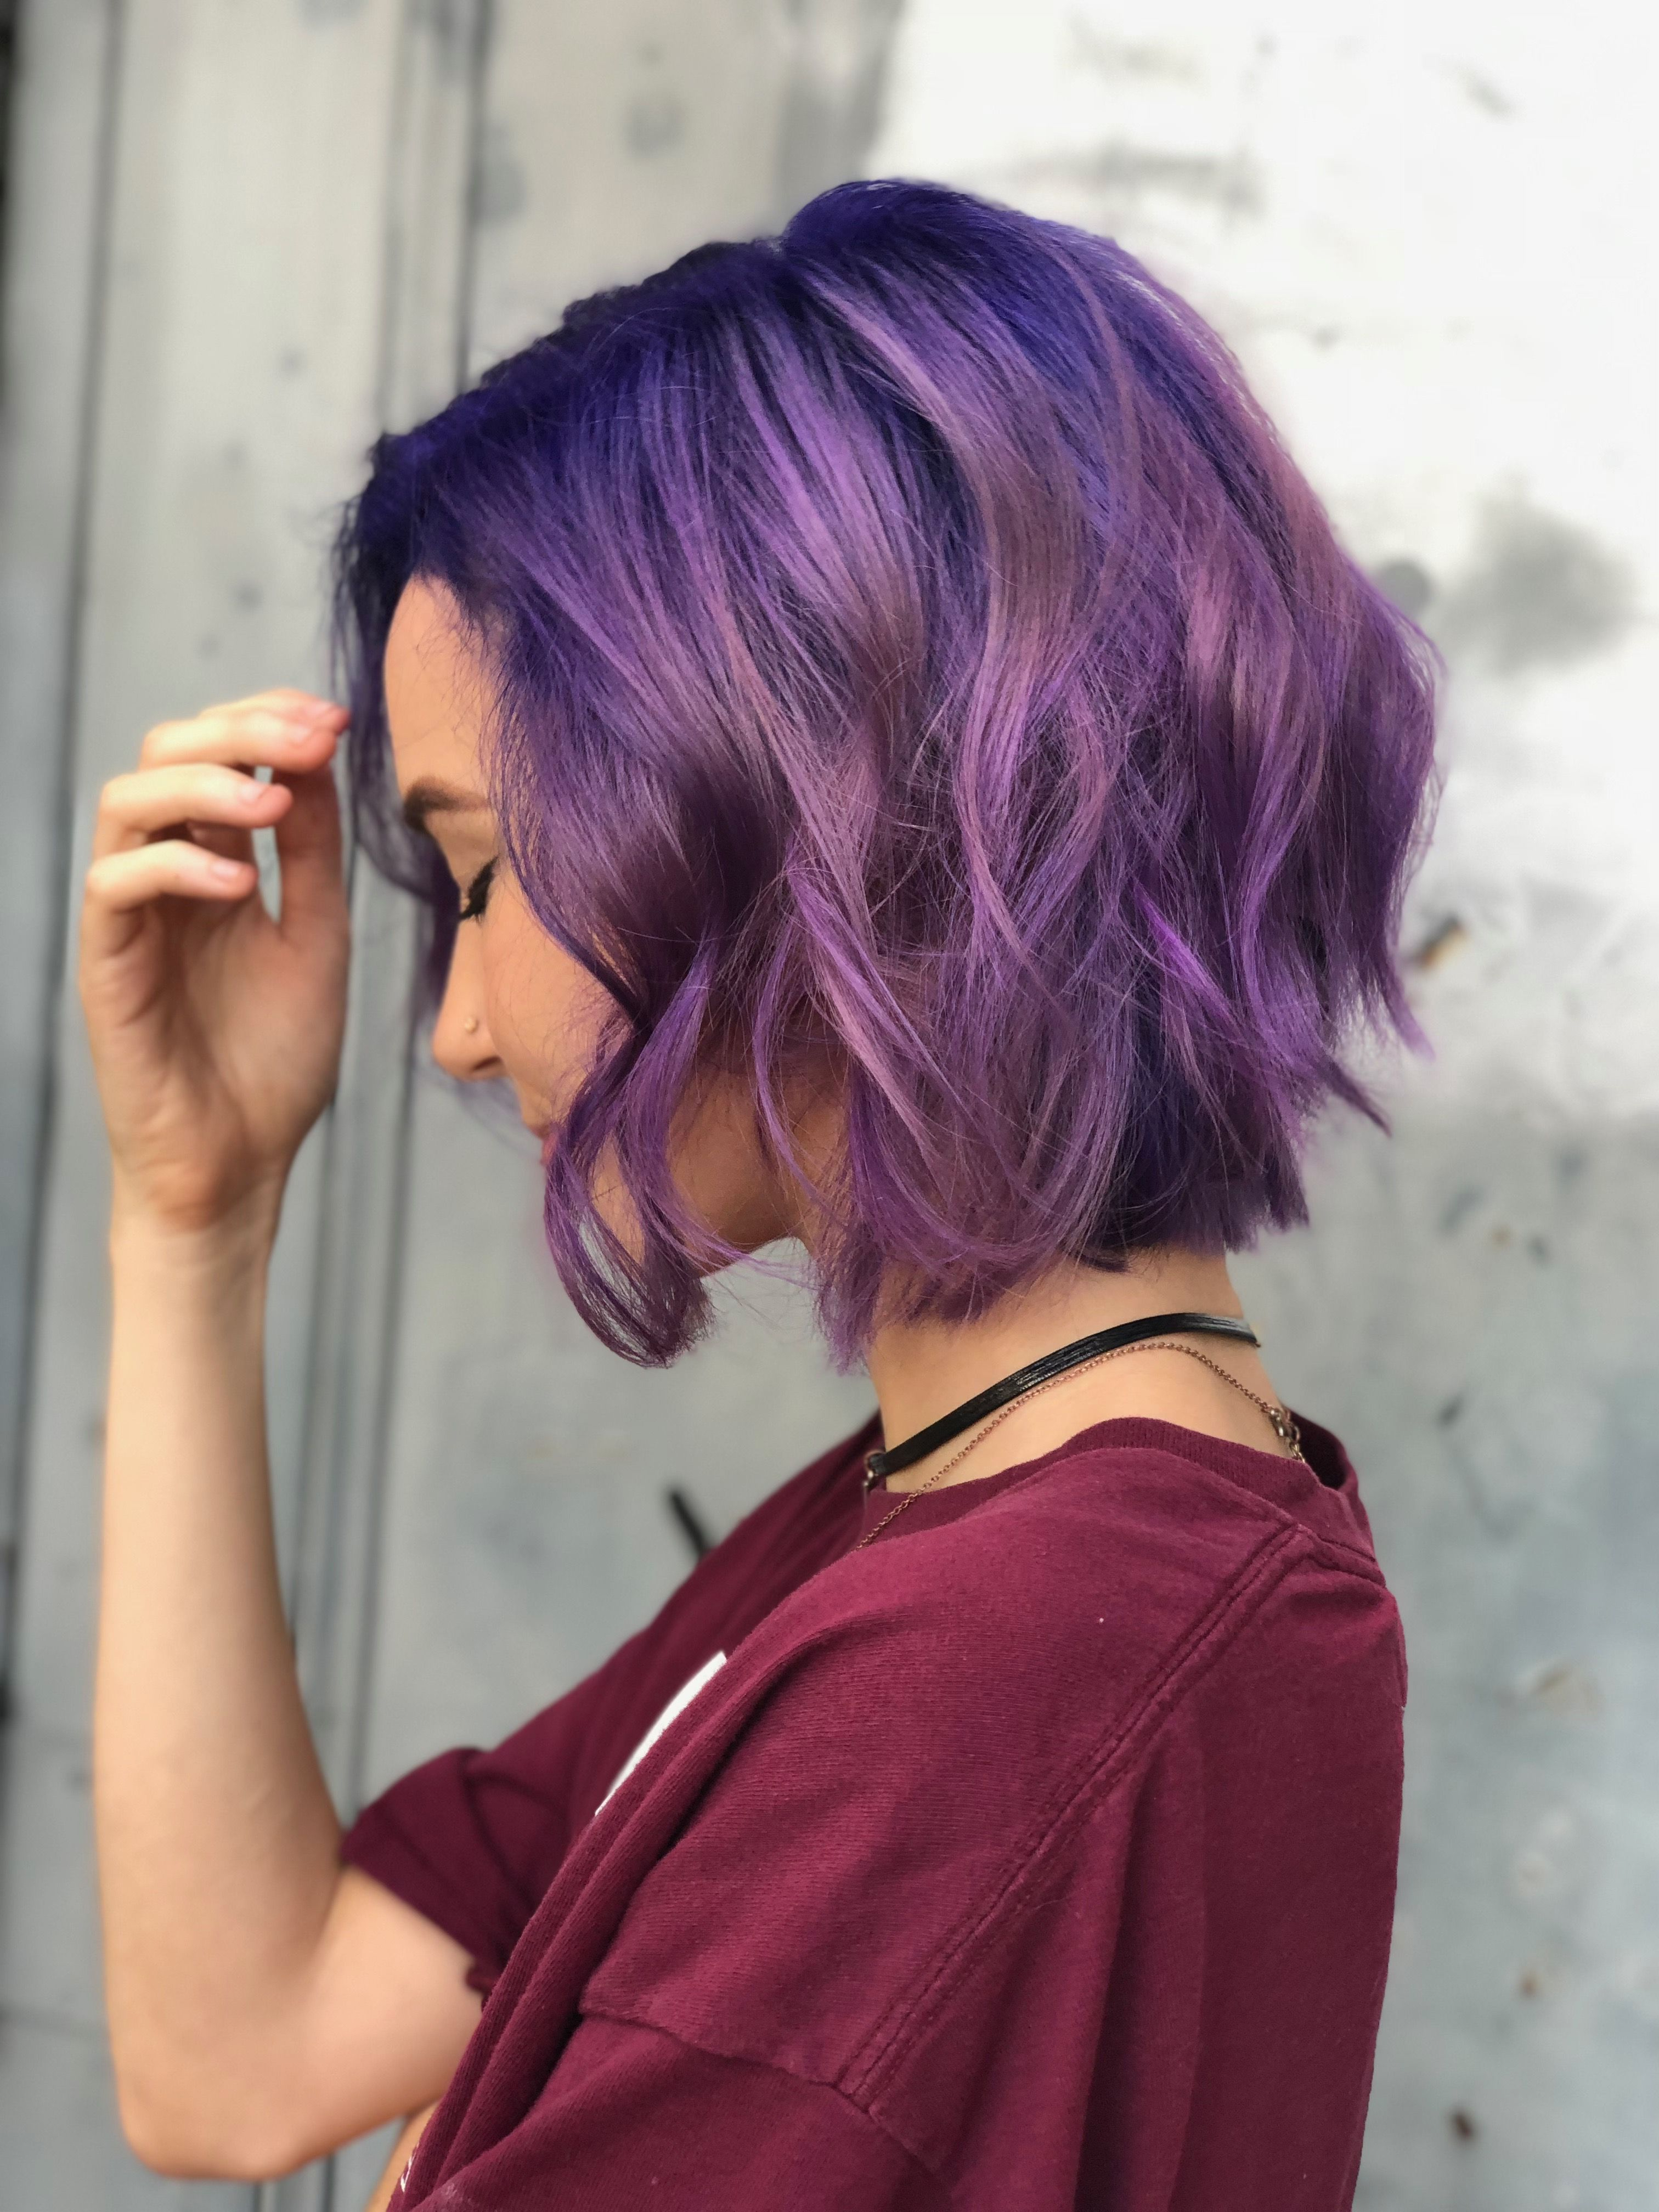 Makeup/hair In 2019 With Regard To Newest Ravishing Raven Waves Hairstyles (View 11 of 20)